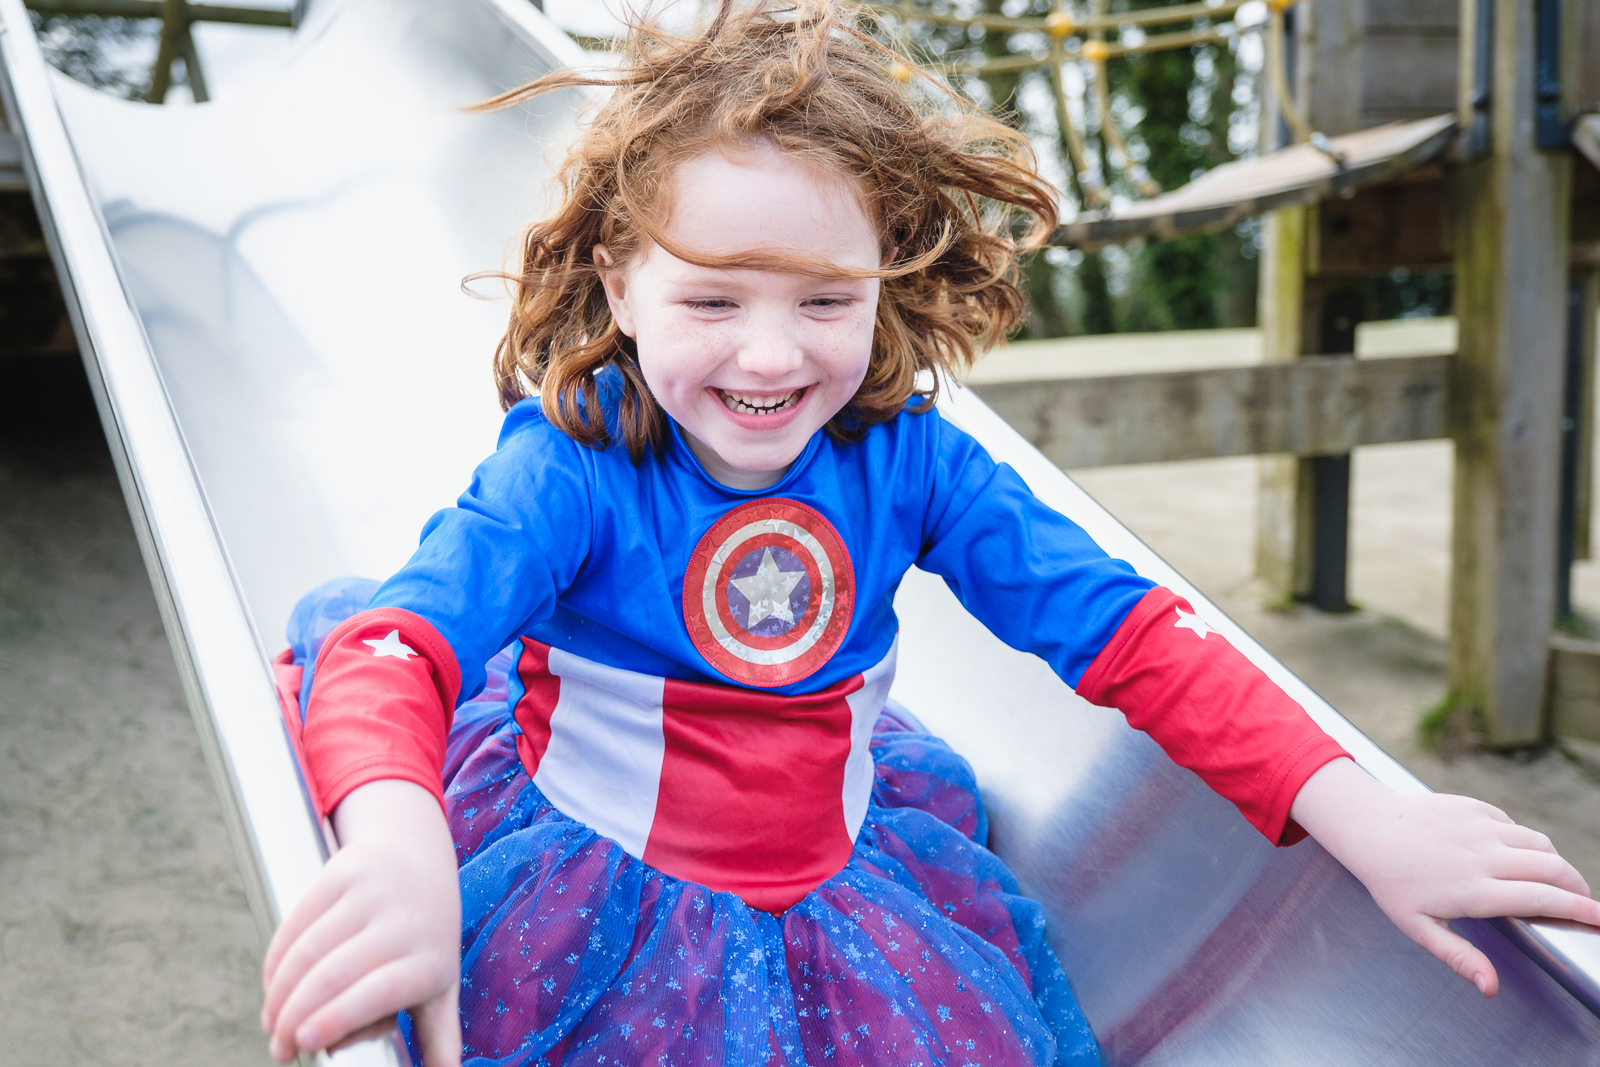 Family photography - portrait of young girl enjoying a slide in Bristol park wearing superhero outfit